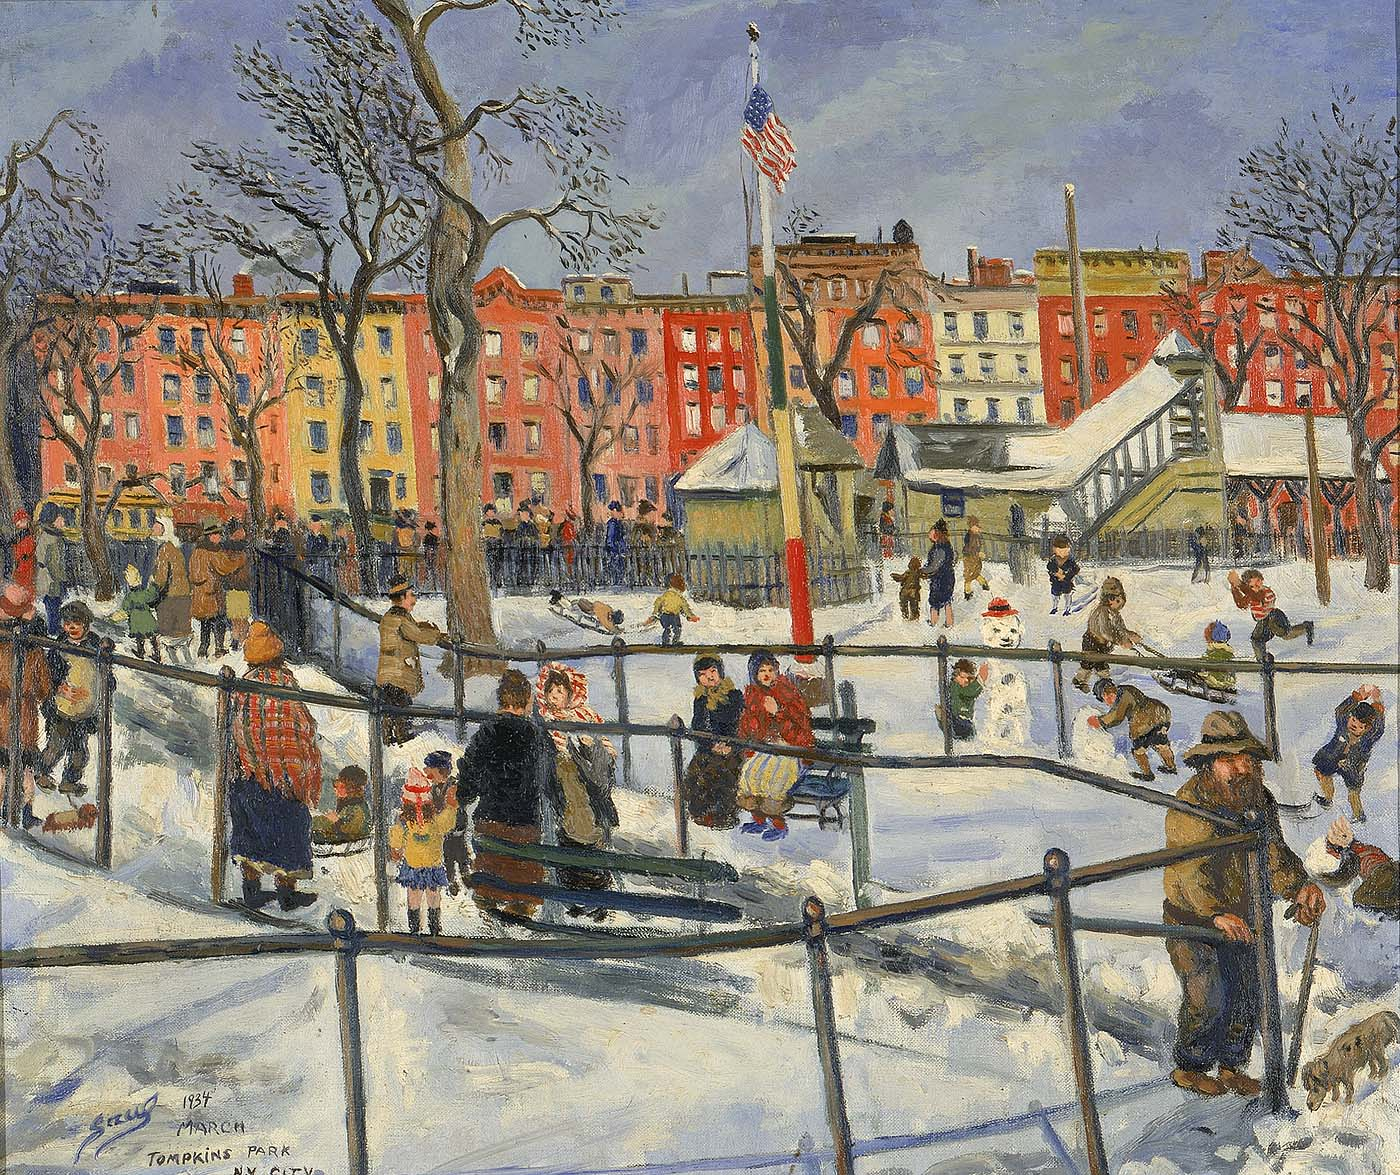 Saul Kovner's Tompkins Park, N.Y. City was painted in 1934, through the Public Works of Art Project. Image via Smithsonian American Art Museum.